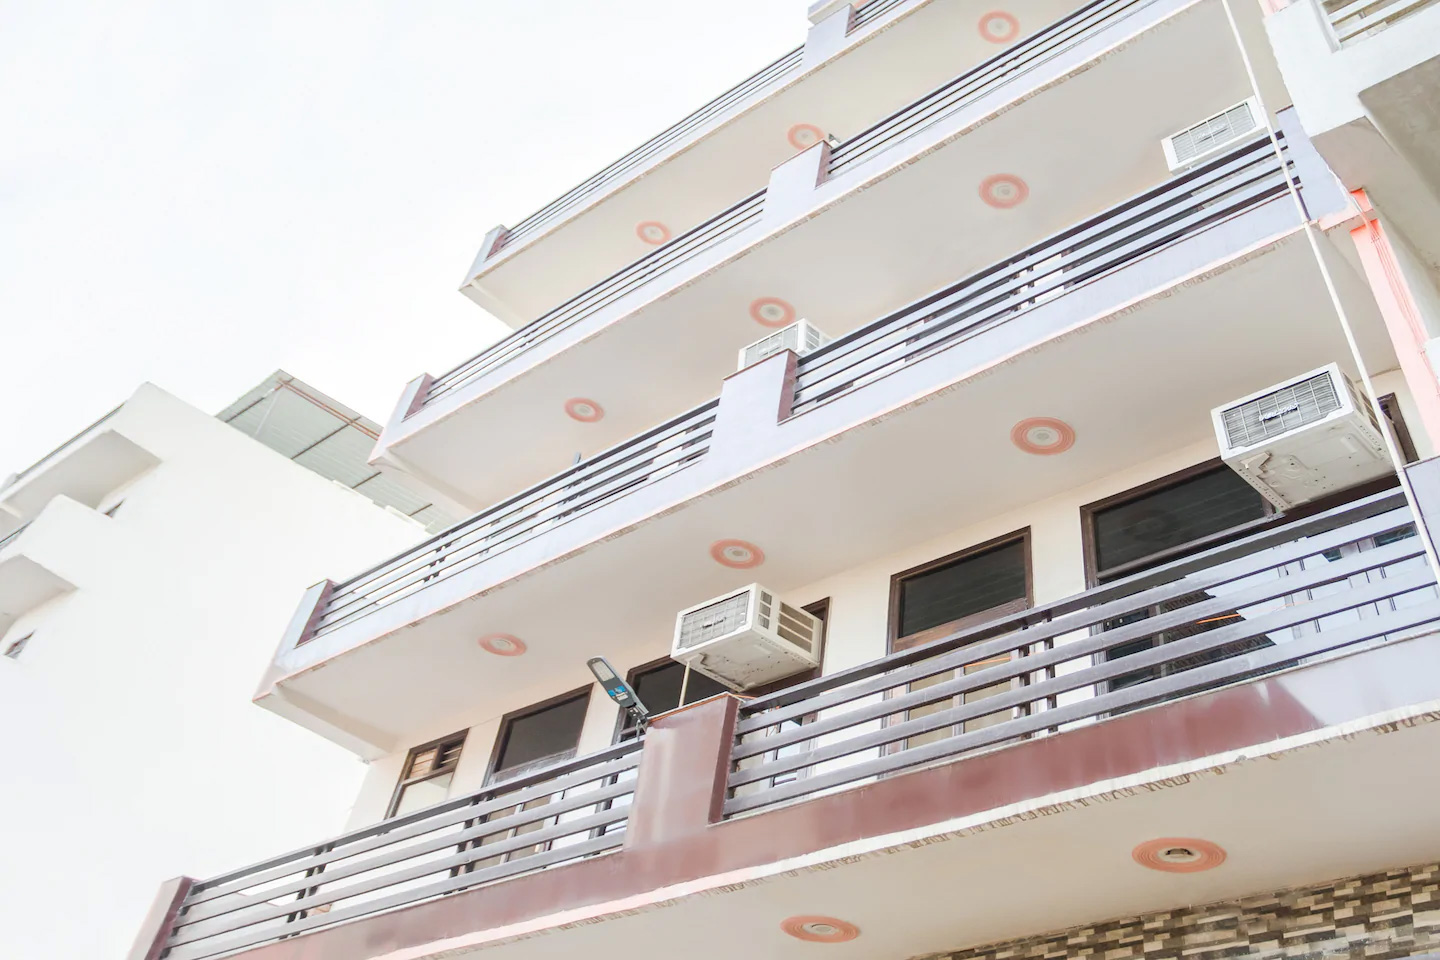 Guest house in Gurgaon, guest house near medanta medicity, Budget hotels in Gurgaon, cheap guest house in Gurgaon